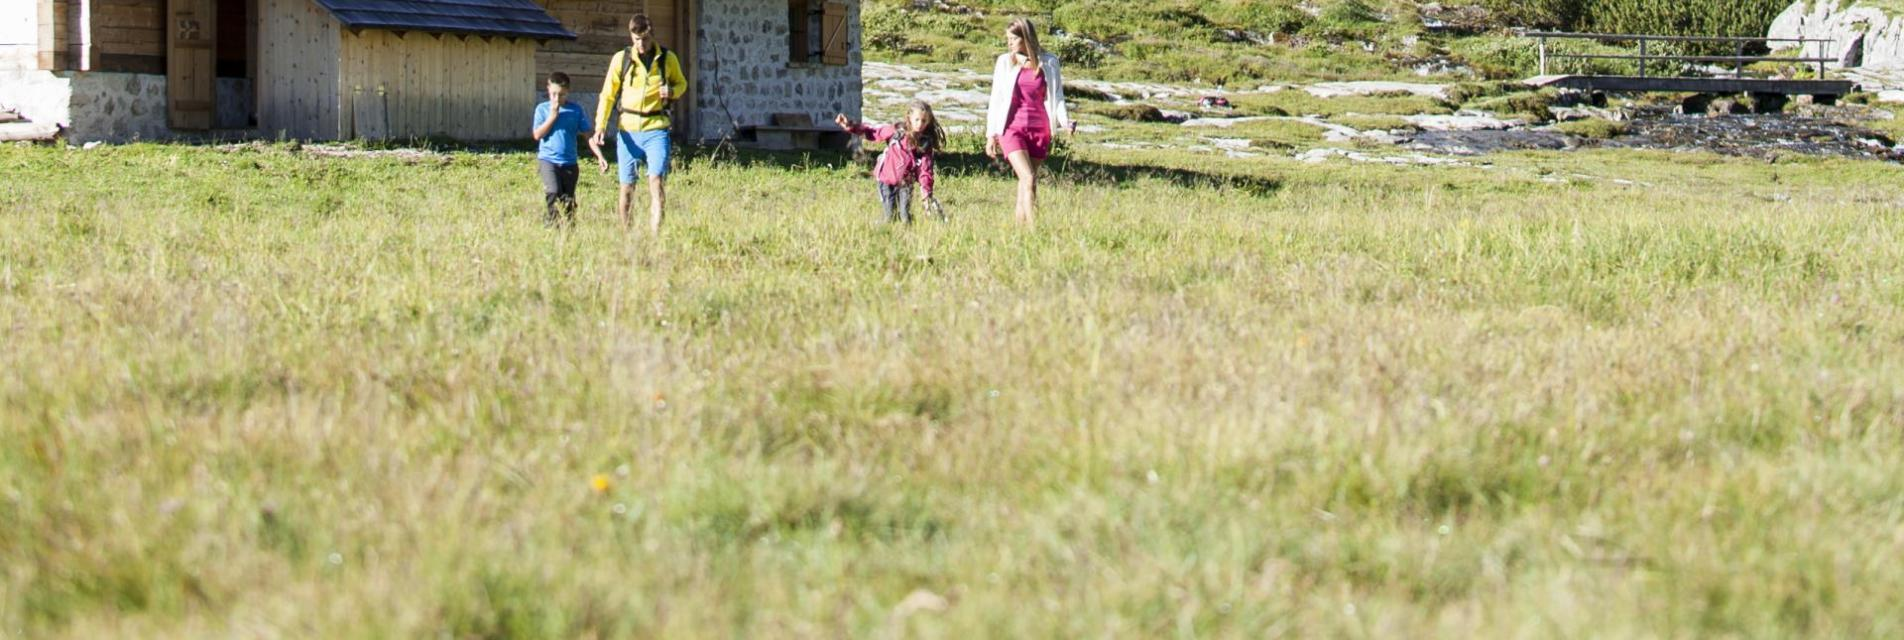 06-olaga-sommer-hiking-c-tvb-kronplatz-photo-alex-filz